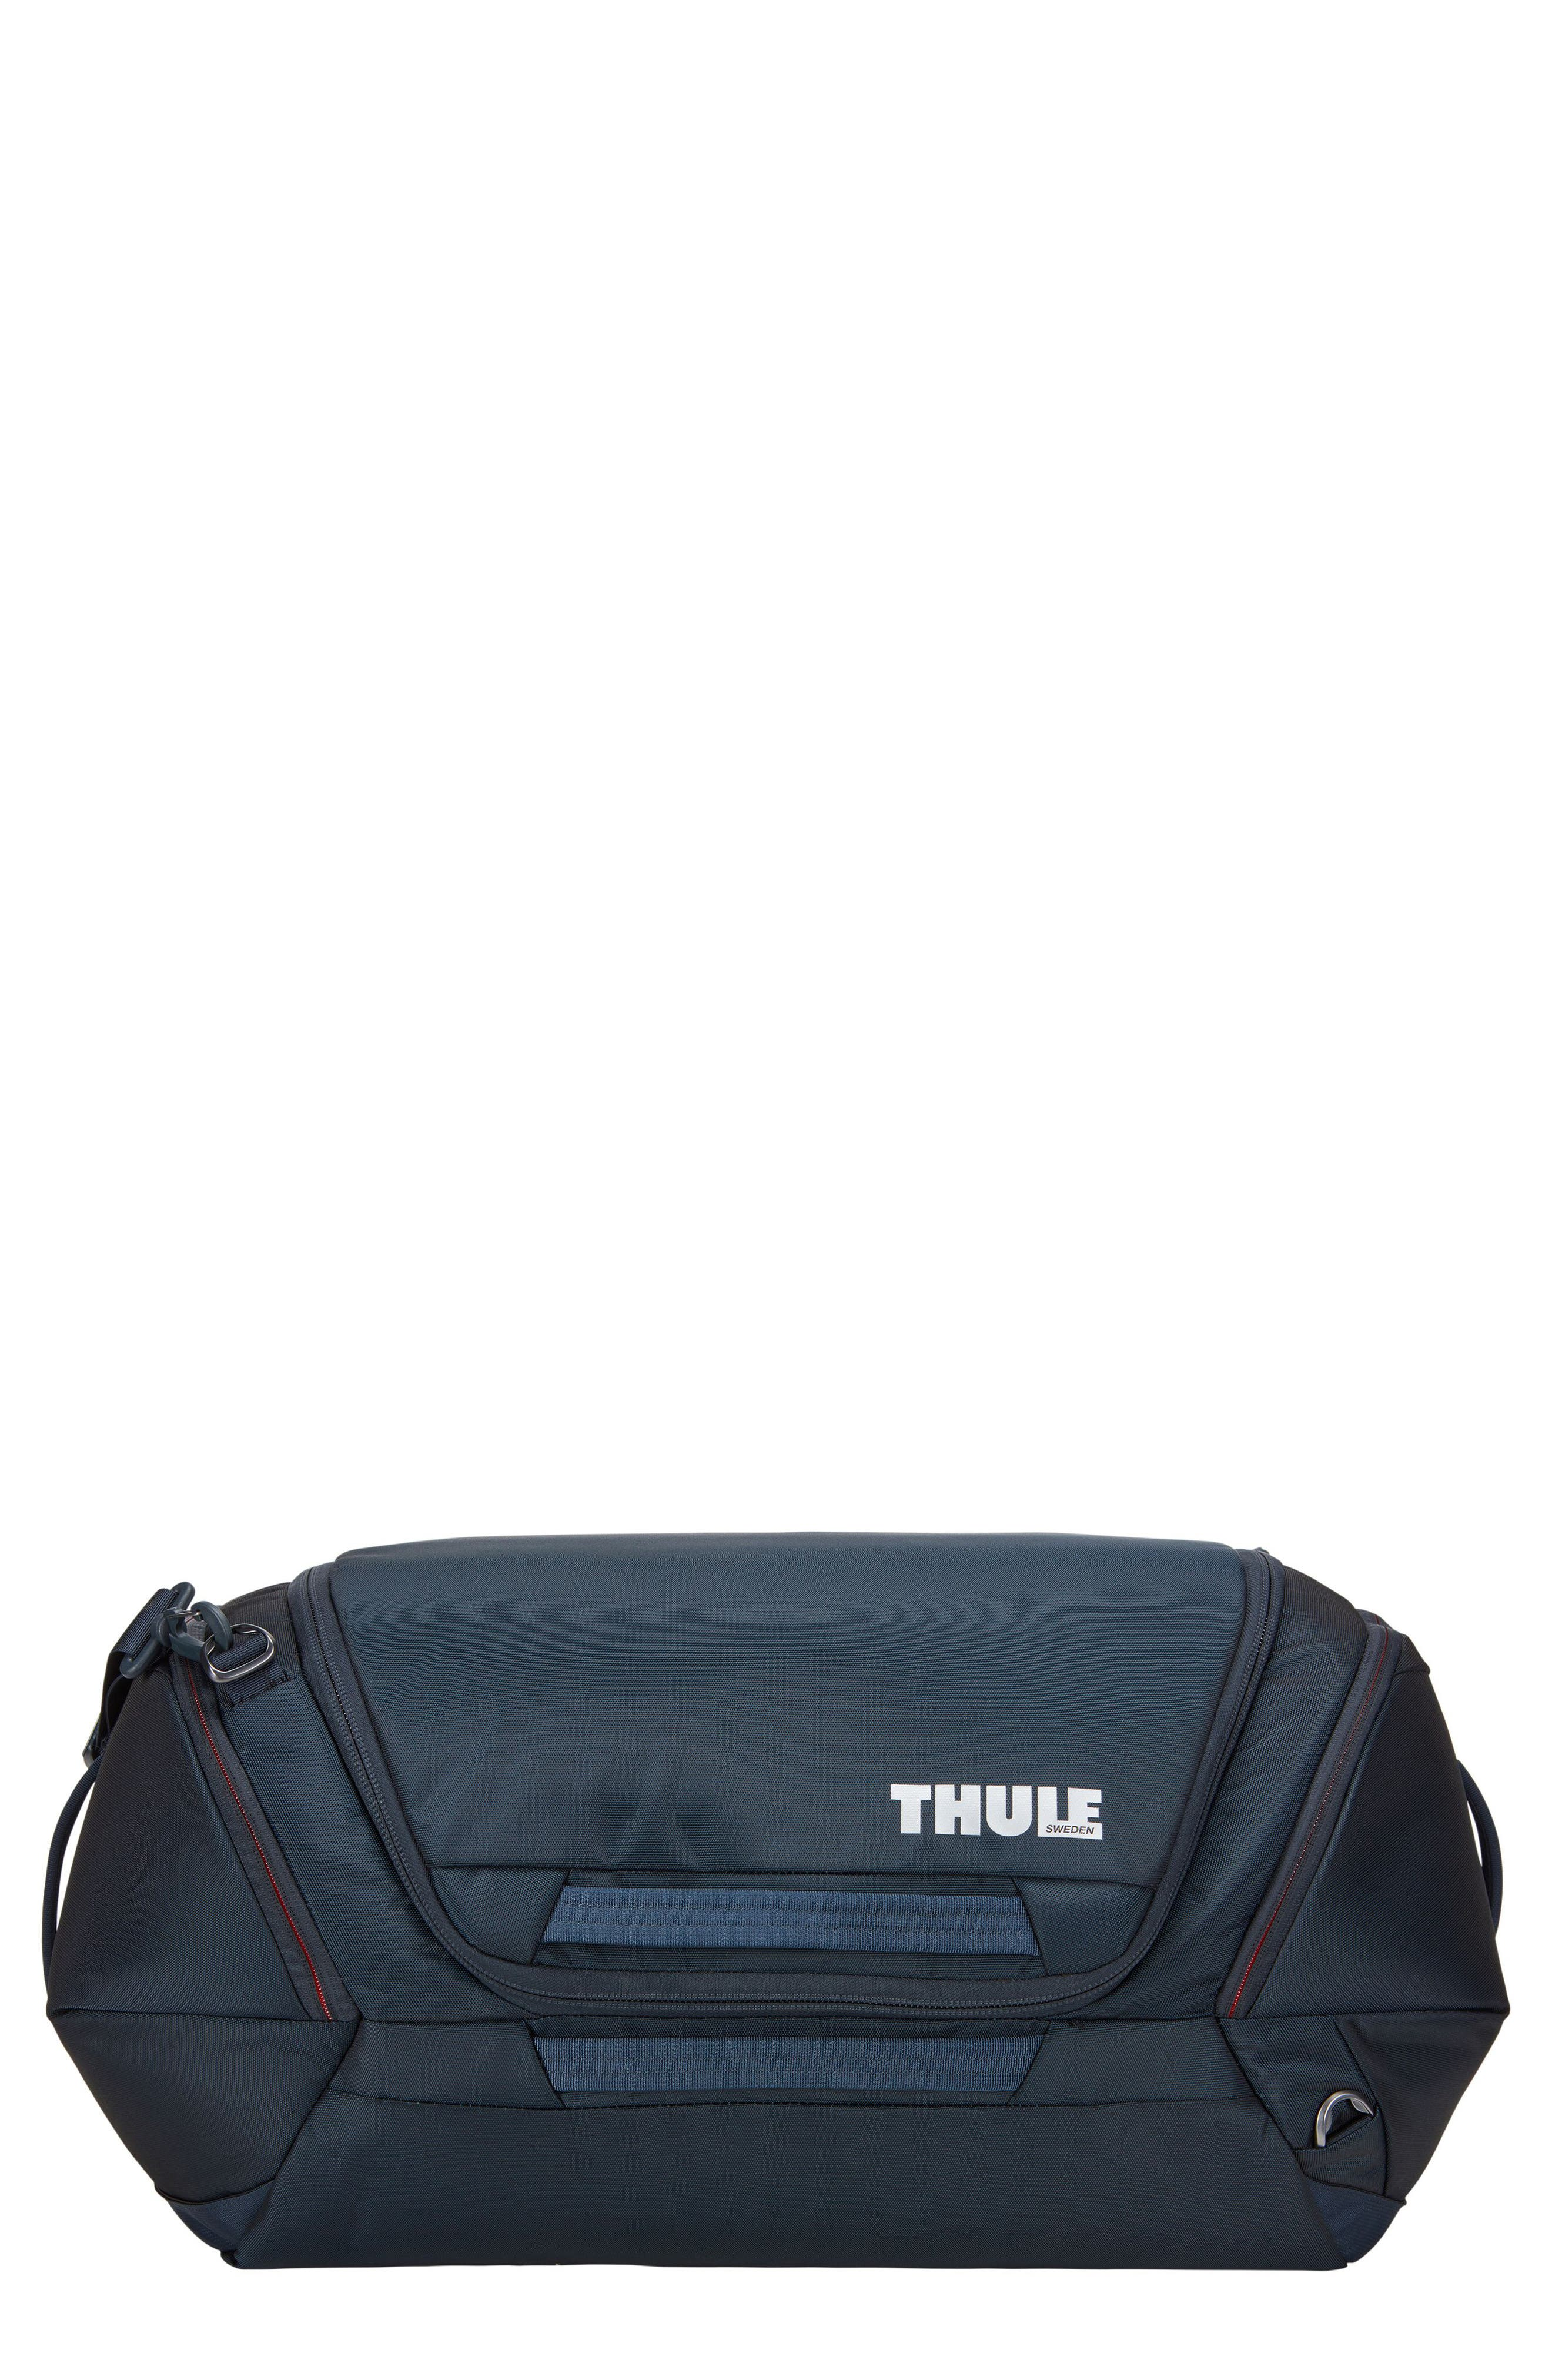 Alternate Image 1 Selected - Thule Subterra 60-Liter Duffel Bag